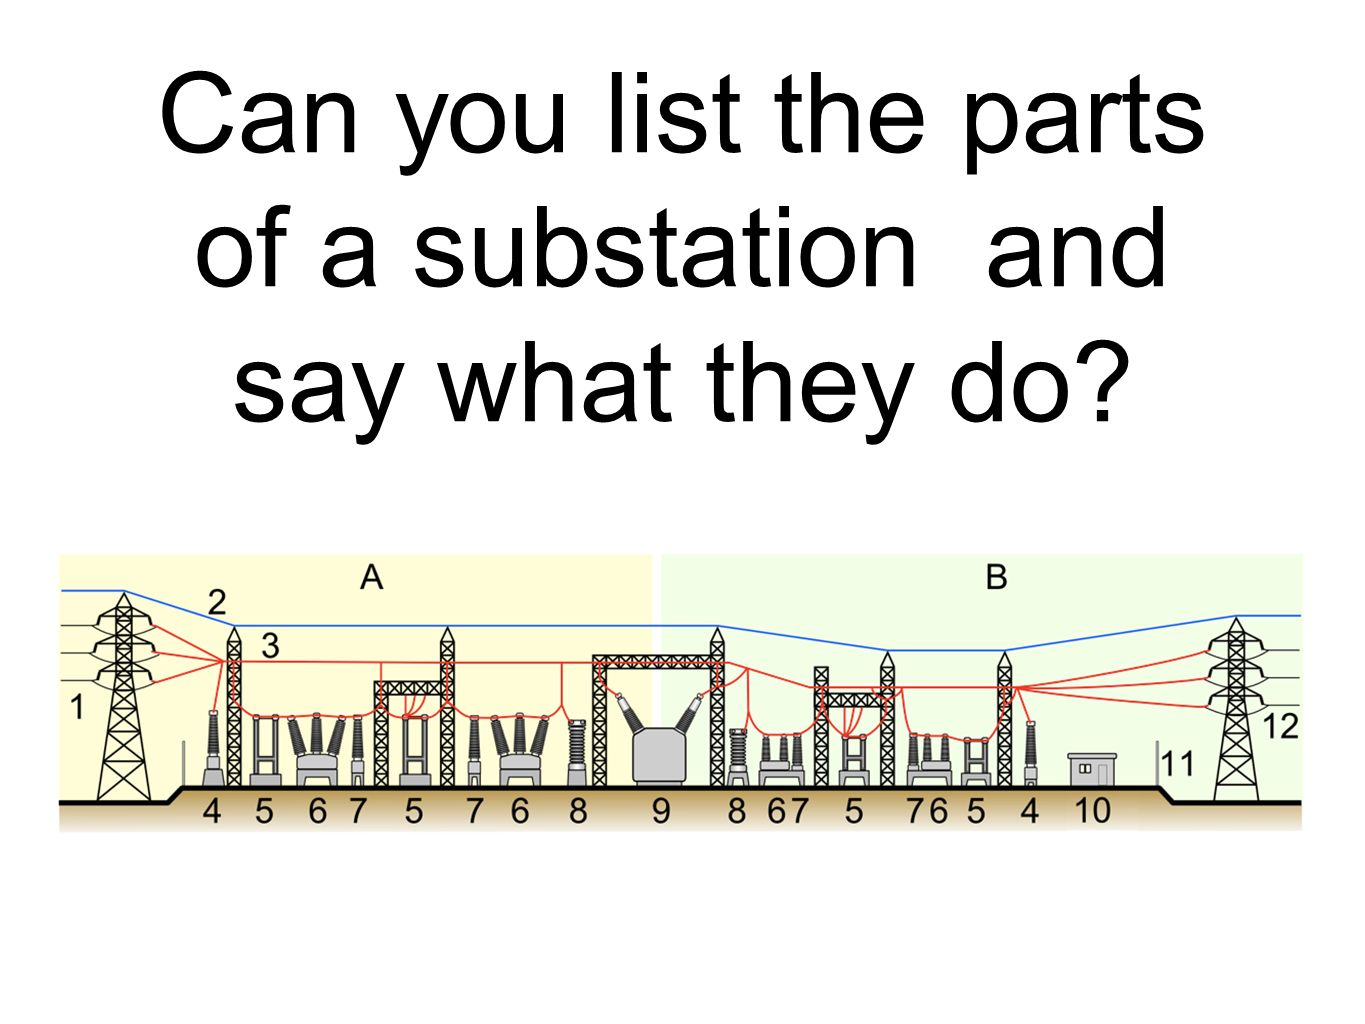 Can you list the parts of a substation and say what they do